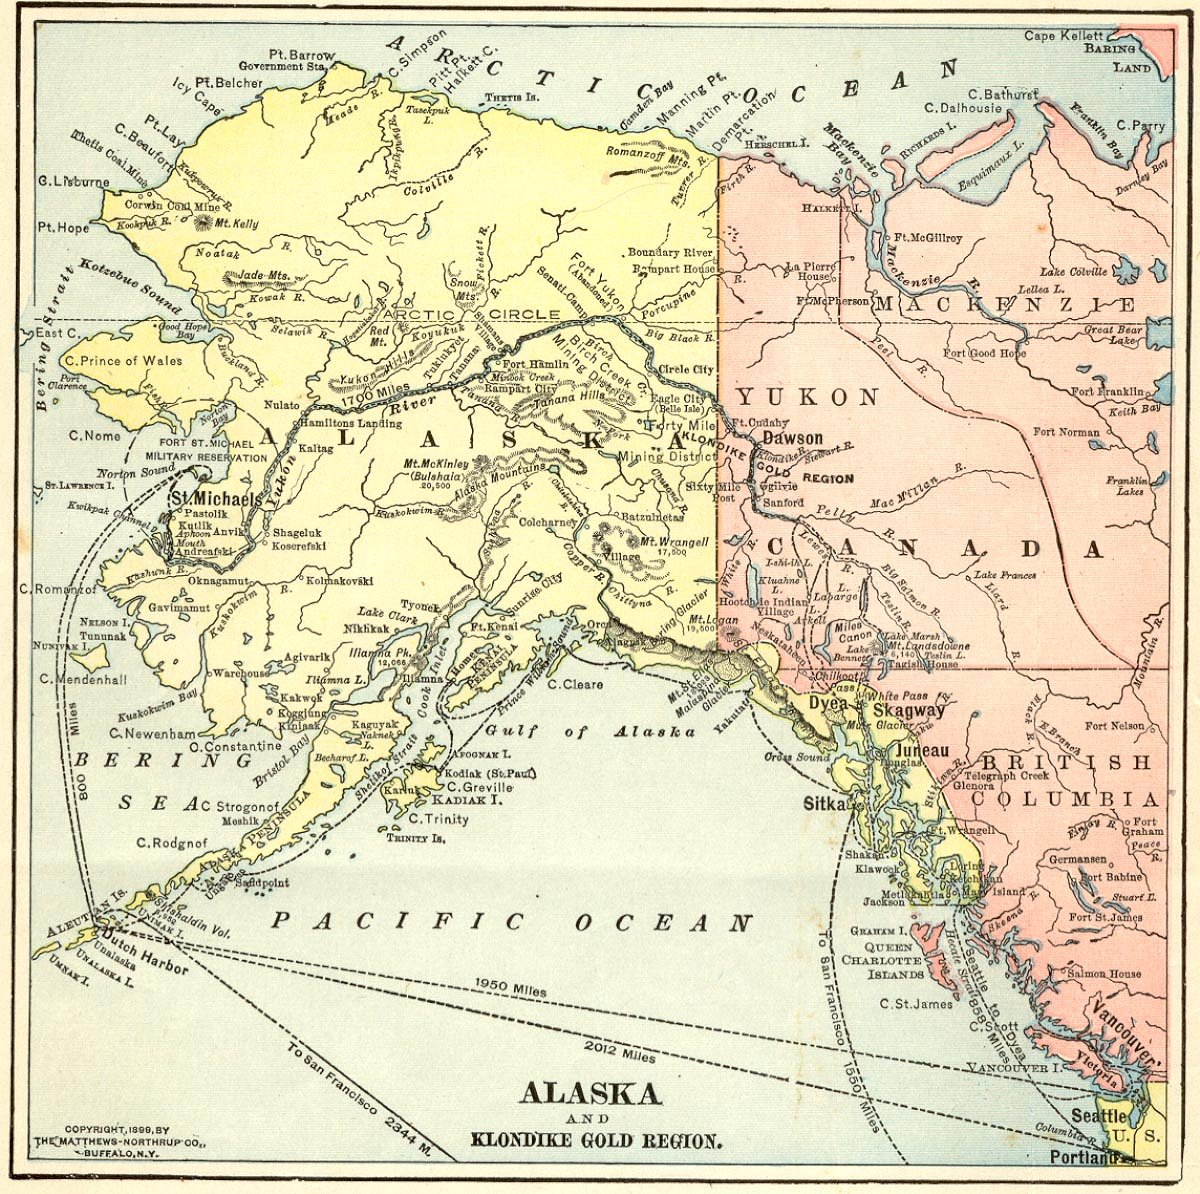 1899 Map Of Alaska And The Yukon Territory  ExploreNorth